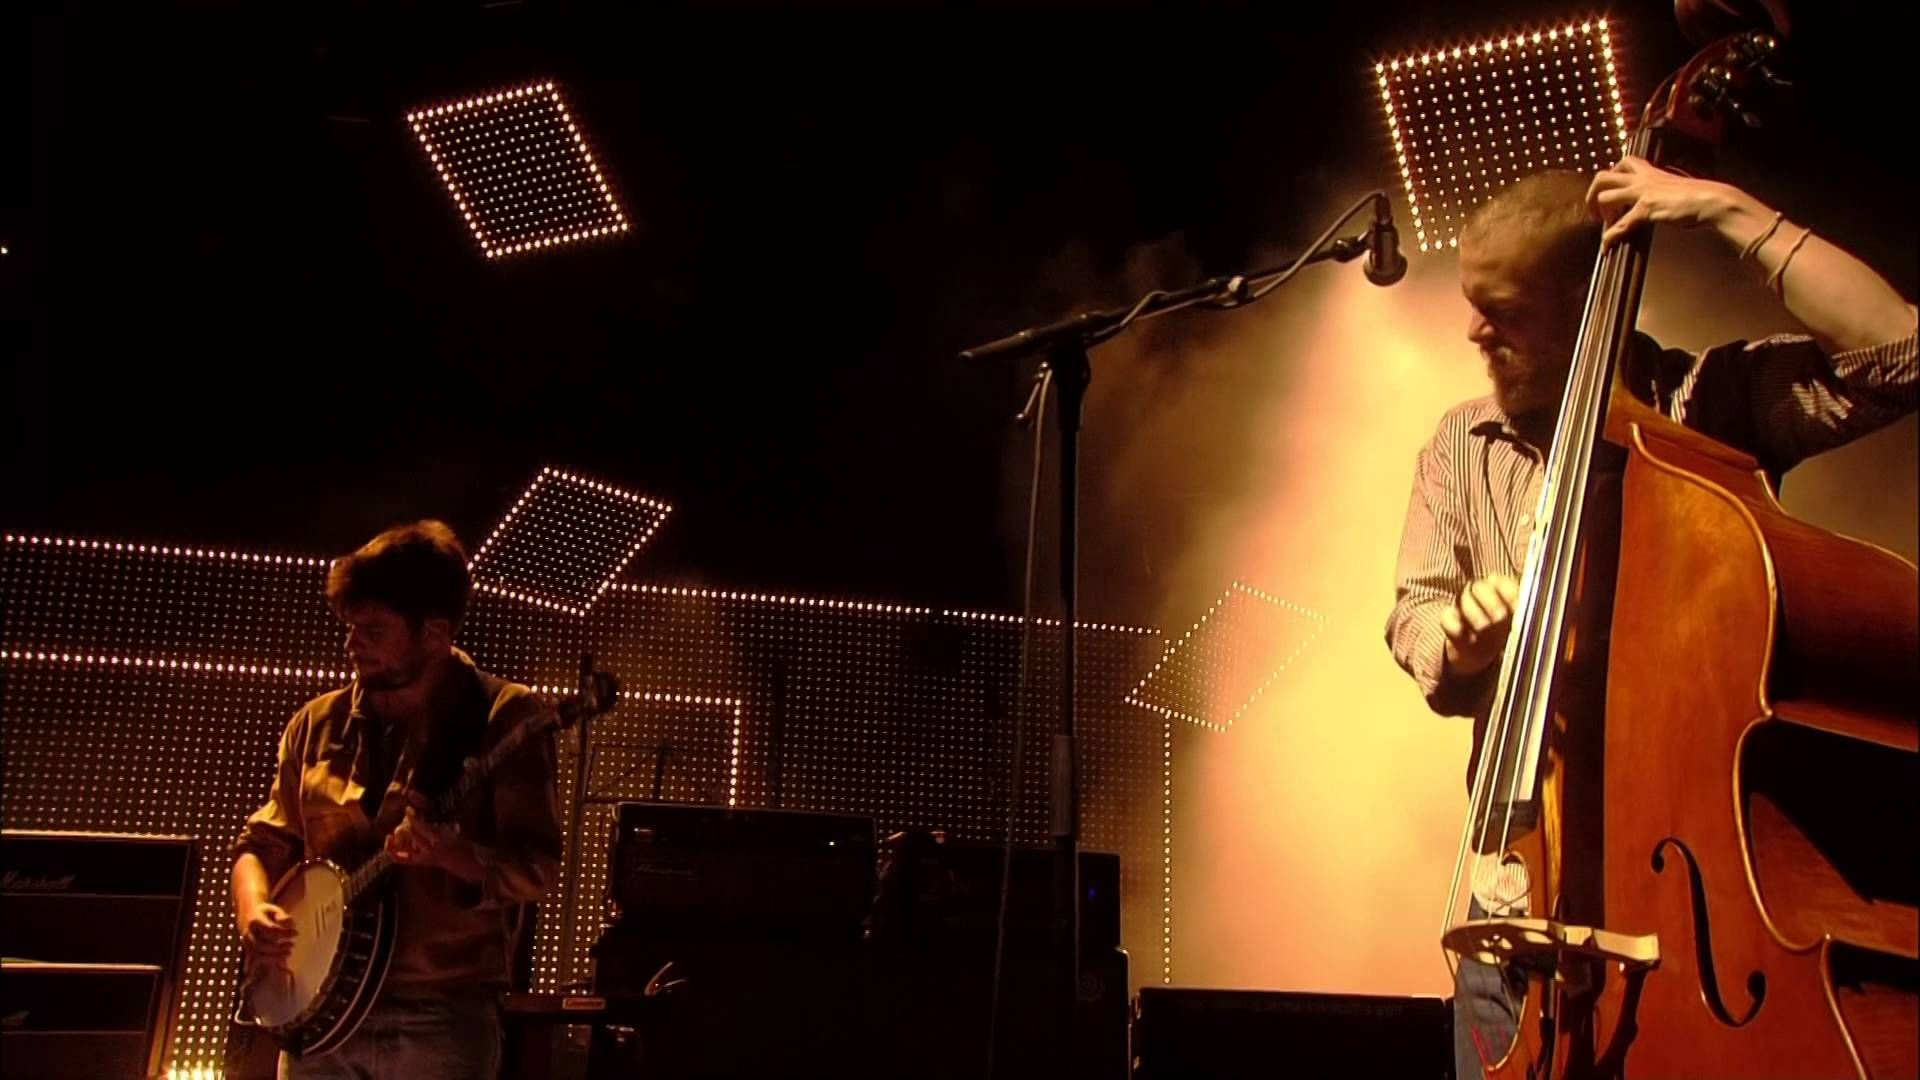 Mumford & Sons Dust Bowl Dance T in the Park 2013